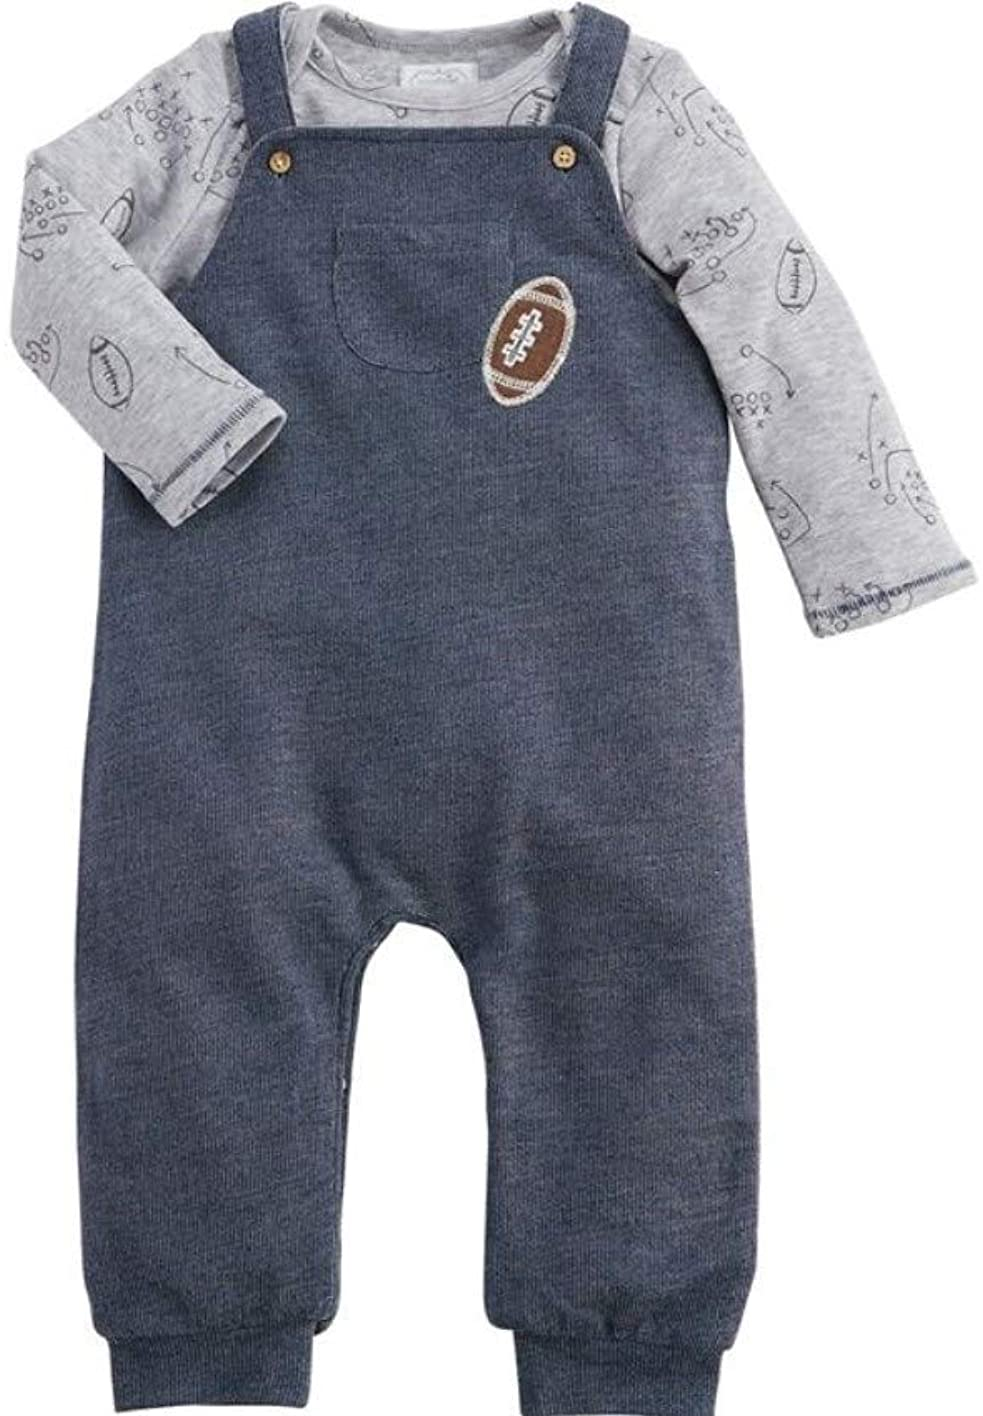 Mud Pie All boy Overall and Shirt Set 9-12 Month